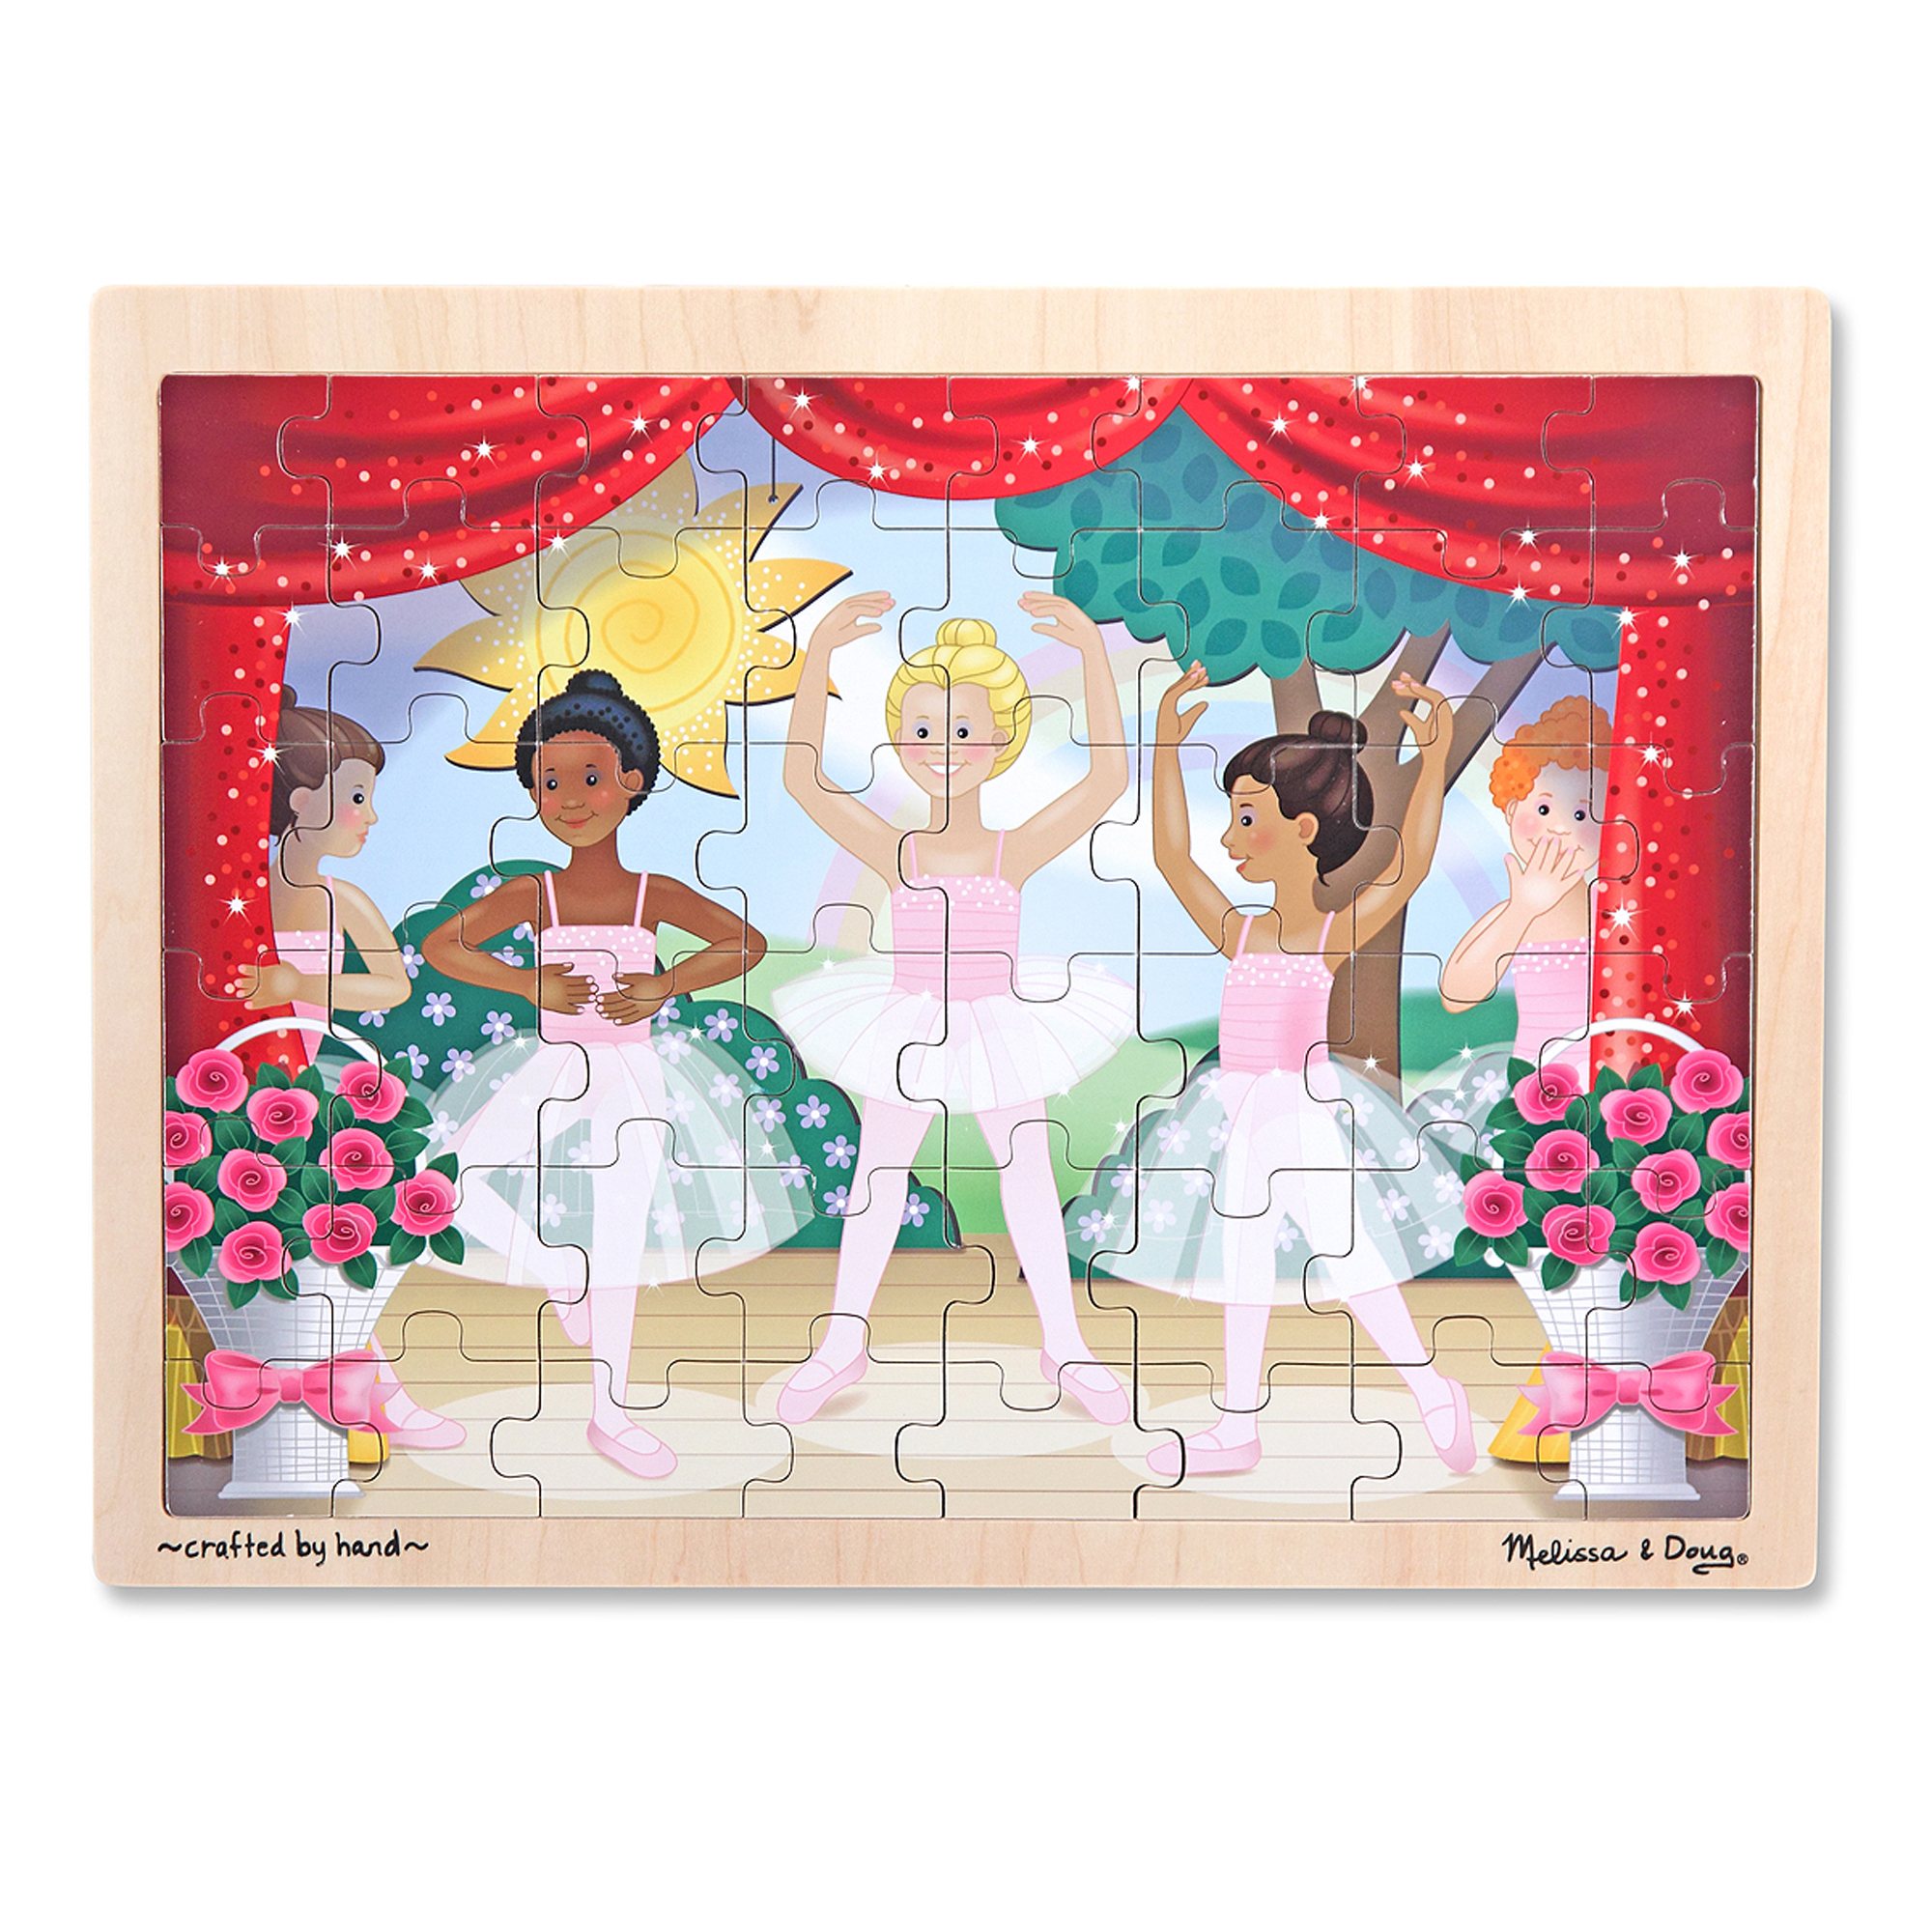 Ballet Performance Wooden Jigsaw Puzzle  48 pieces